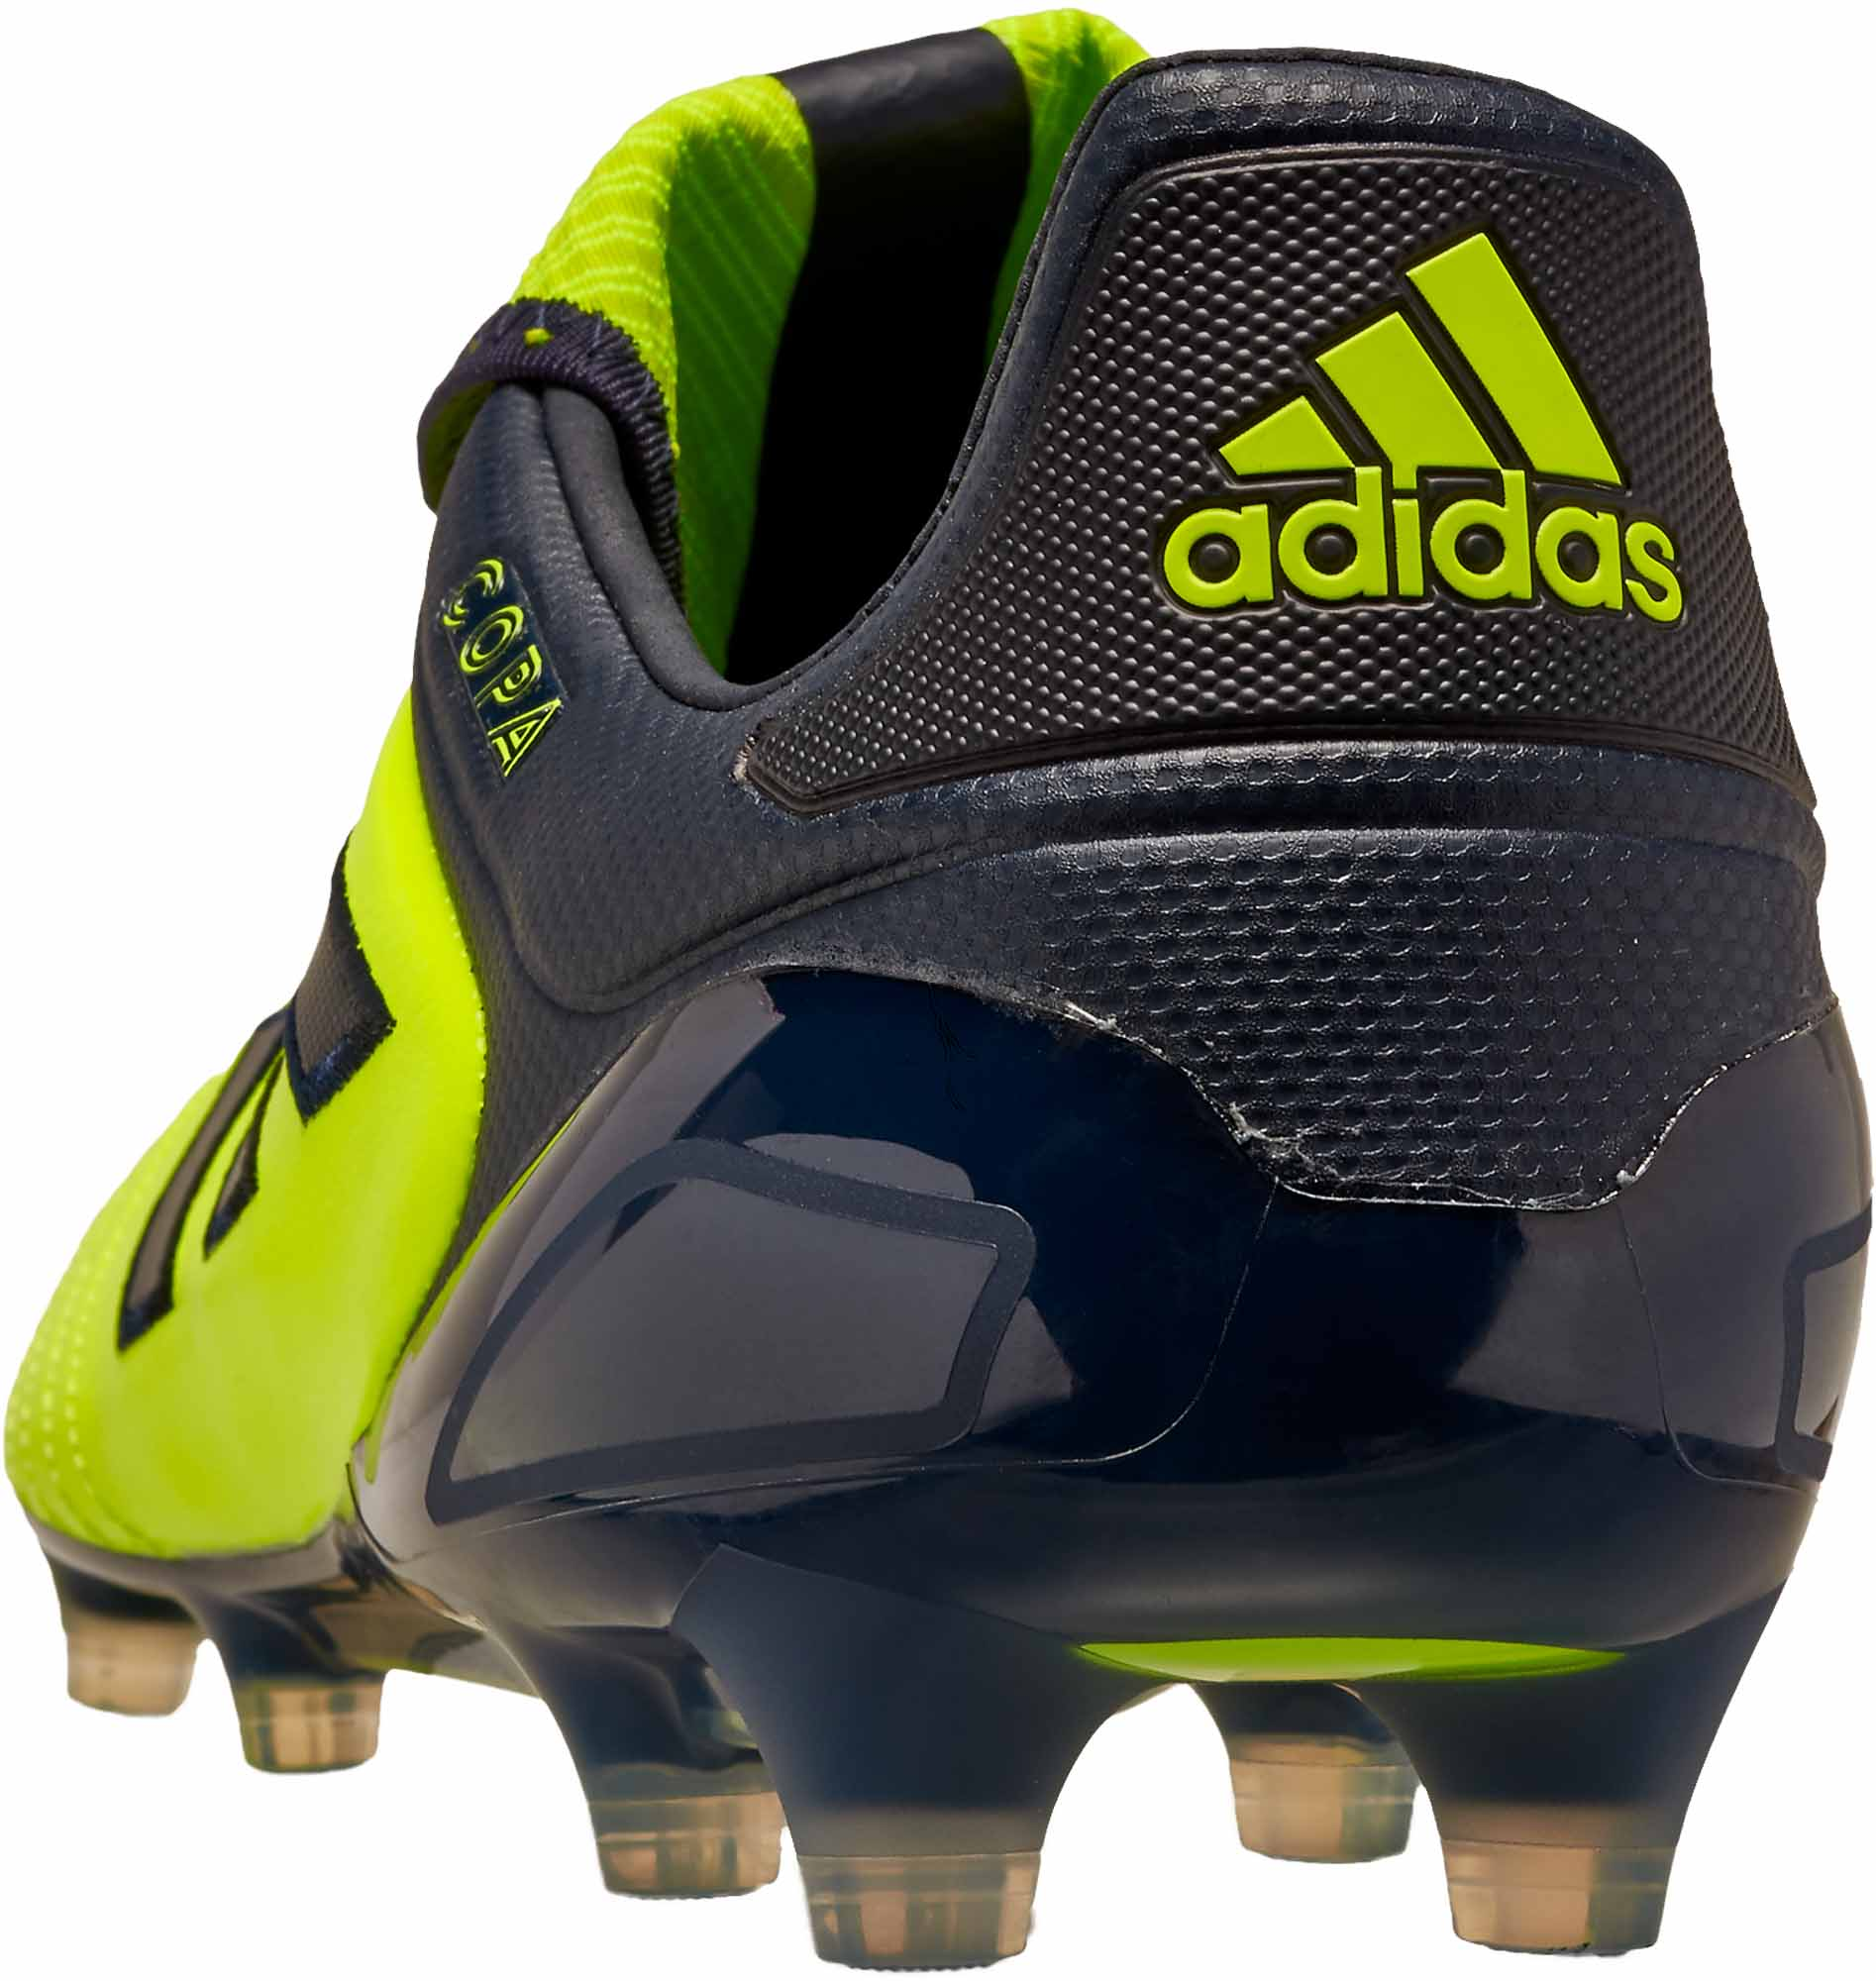 adidas Copa 17.1 FG Soccer Shoes - adidas Soccer Cleats